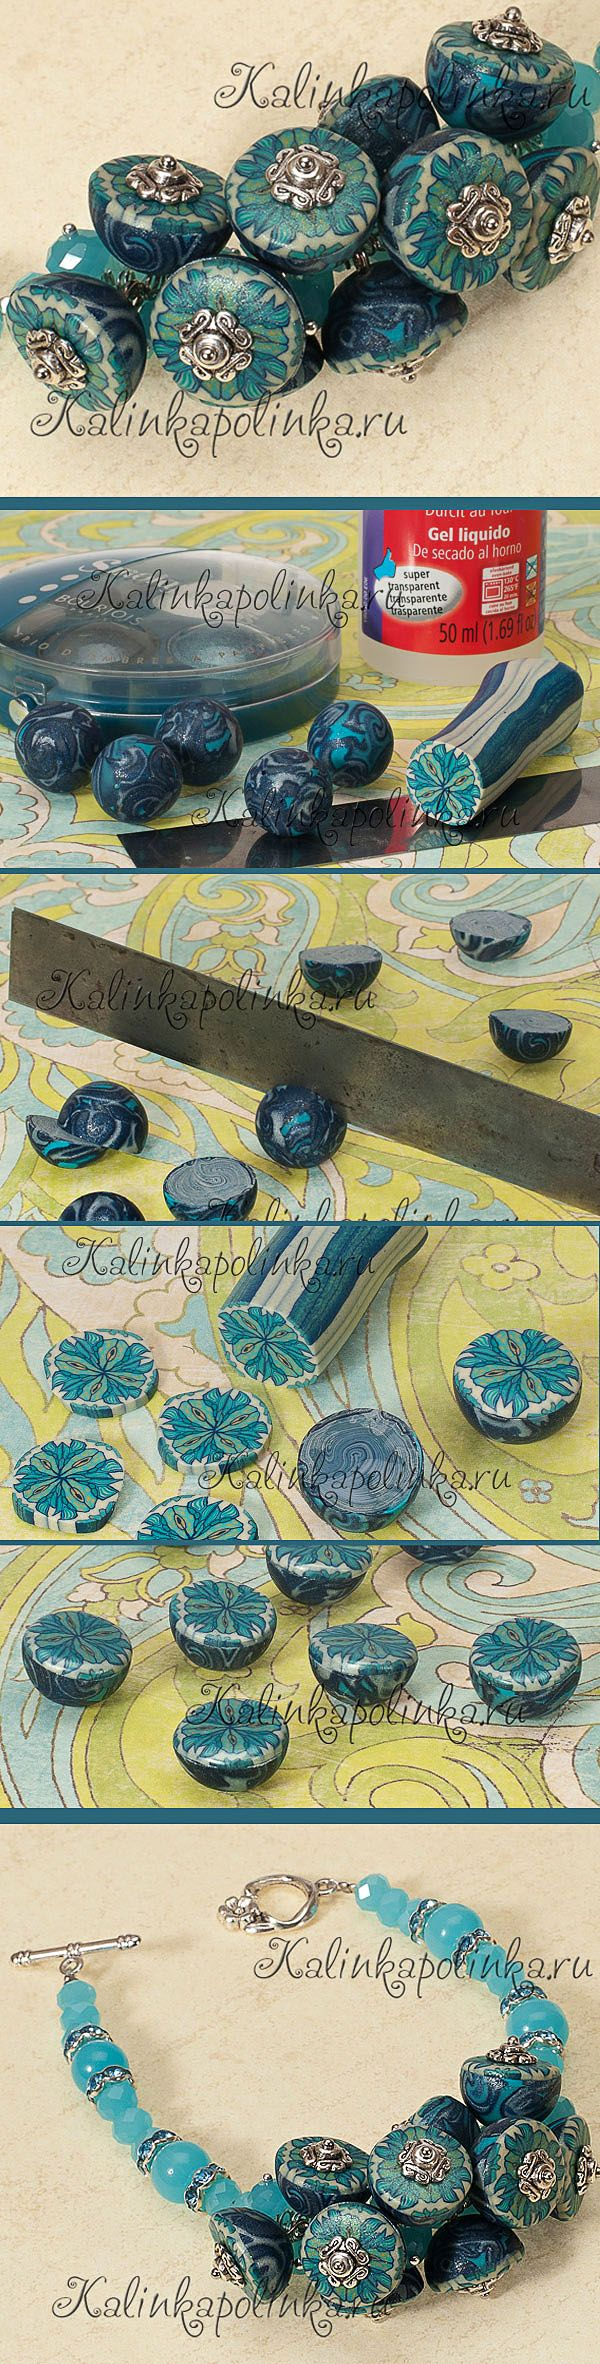 FREE POLYMER CLAY TUTORIAL: great shape for beads, great use of fancy headpins.